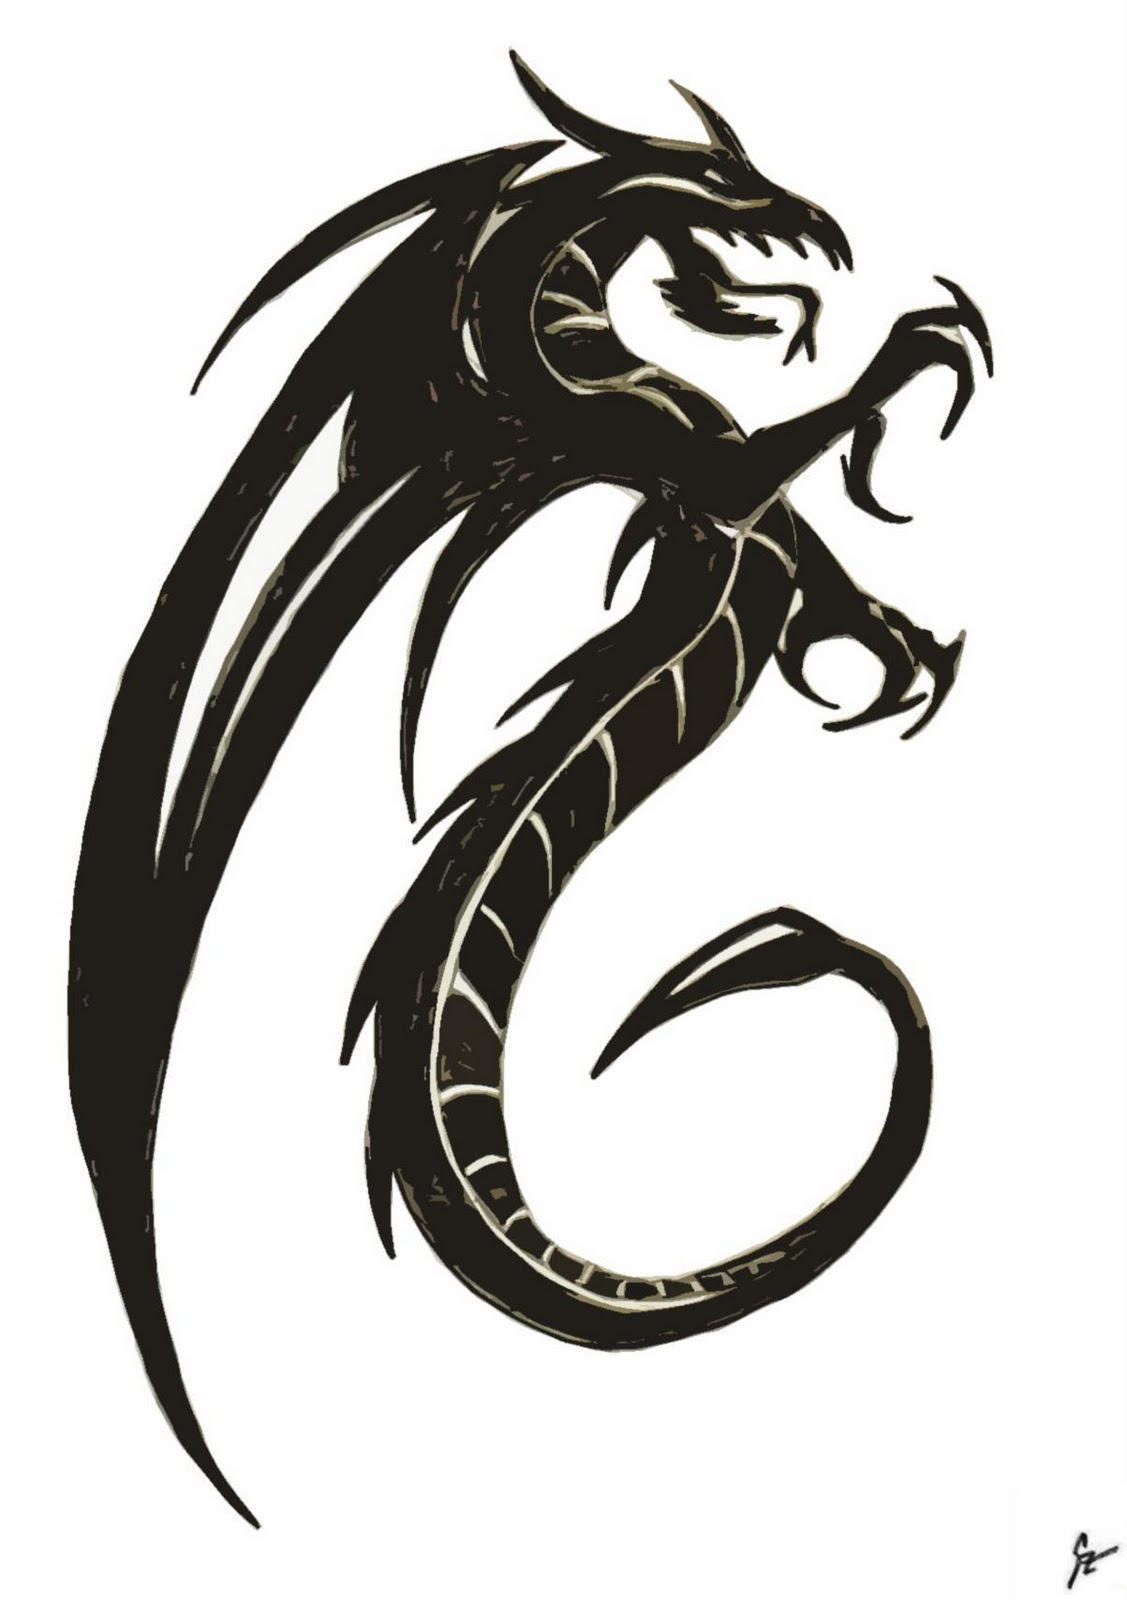 Dragon Clipart Black And White : dragon, clipart, black, white, Dragon, Images, Black, White,, Download, Clipart, Library